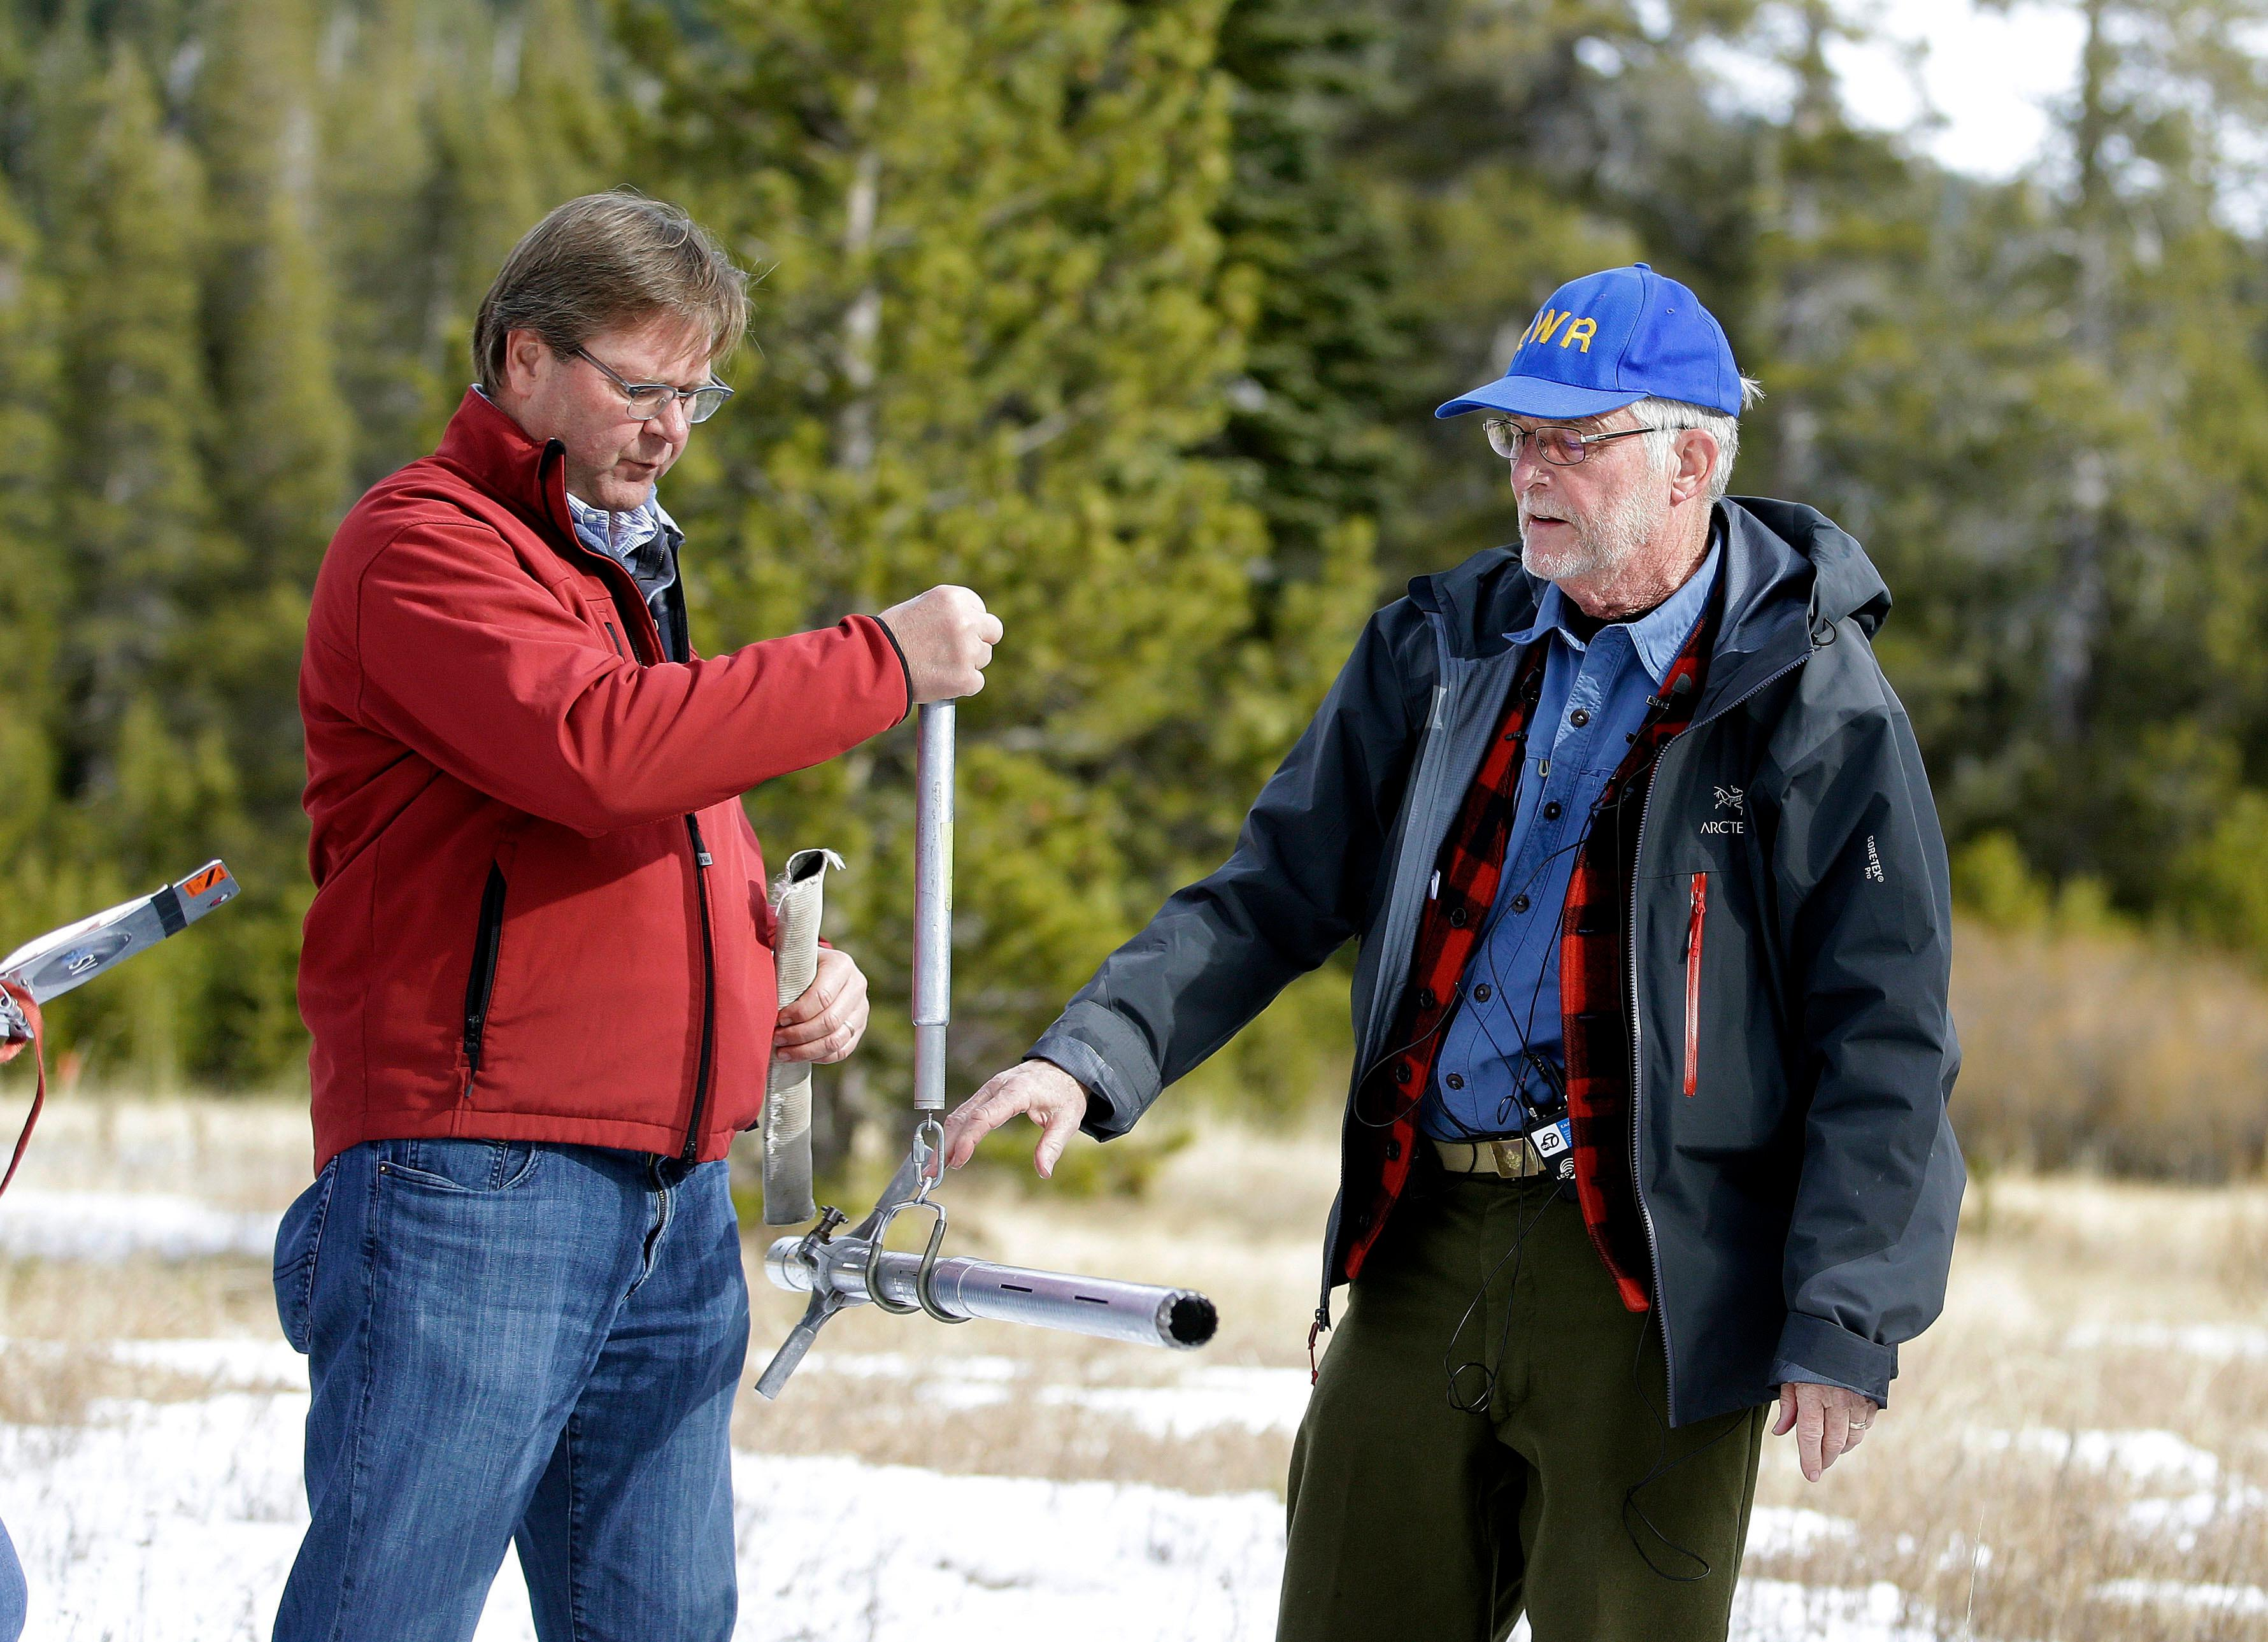 Frank Gehrke, chief of the California Cooperative Snow Surveys Program for the Department of Water Resources, right, checks the weight of the snow survey sample on a scale held by Grant Davis, director of the Dept. of Water Resources, while conducting the first snow survey of the season at the Phillips Station snow course, Wednesday, Jan. 3, 2018, near Echo Summit, Calif.  (AP Photo/Rich Pedroncelli)